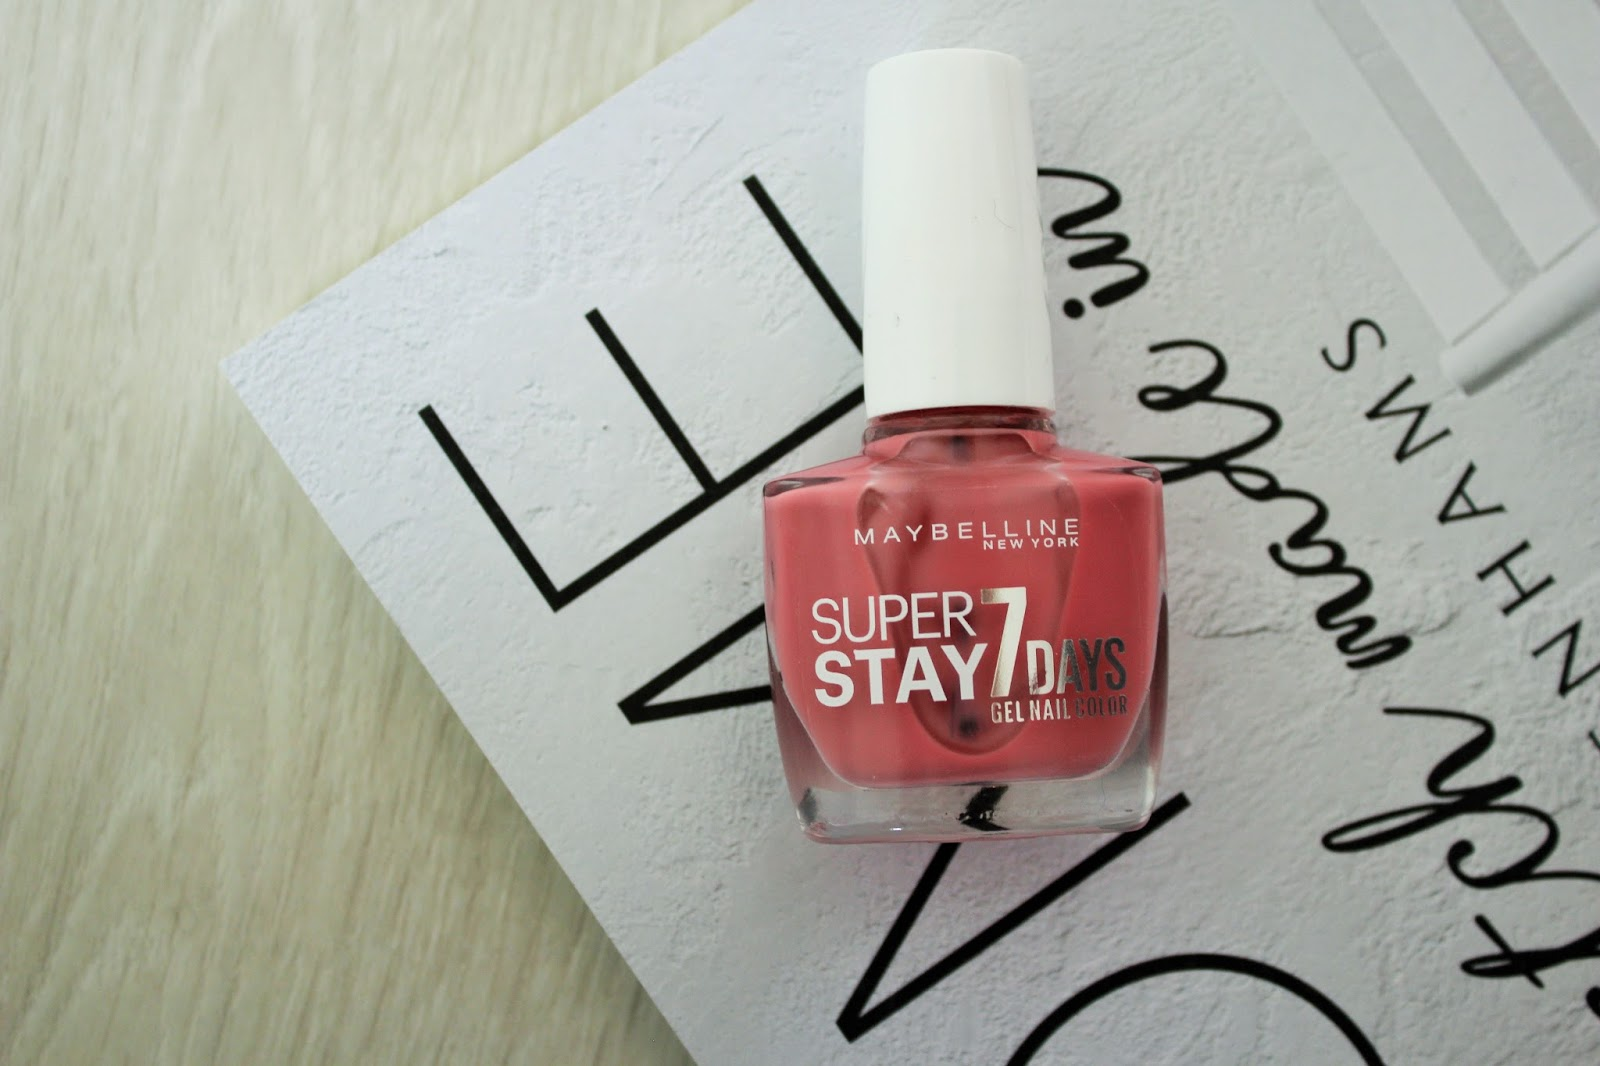 August Favourites 8 - Maybelline Super Stay 7 Days Gel Nail Color in Nude Rose